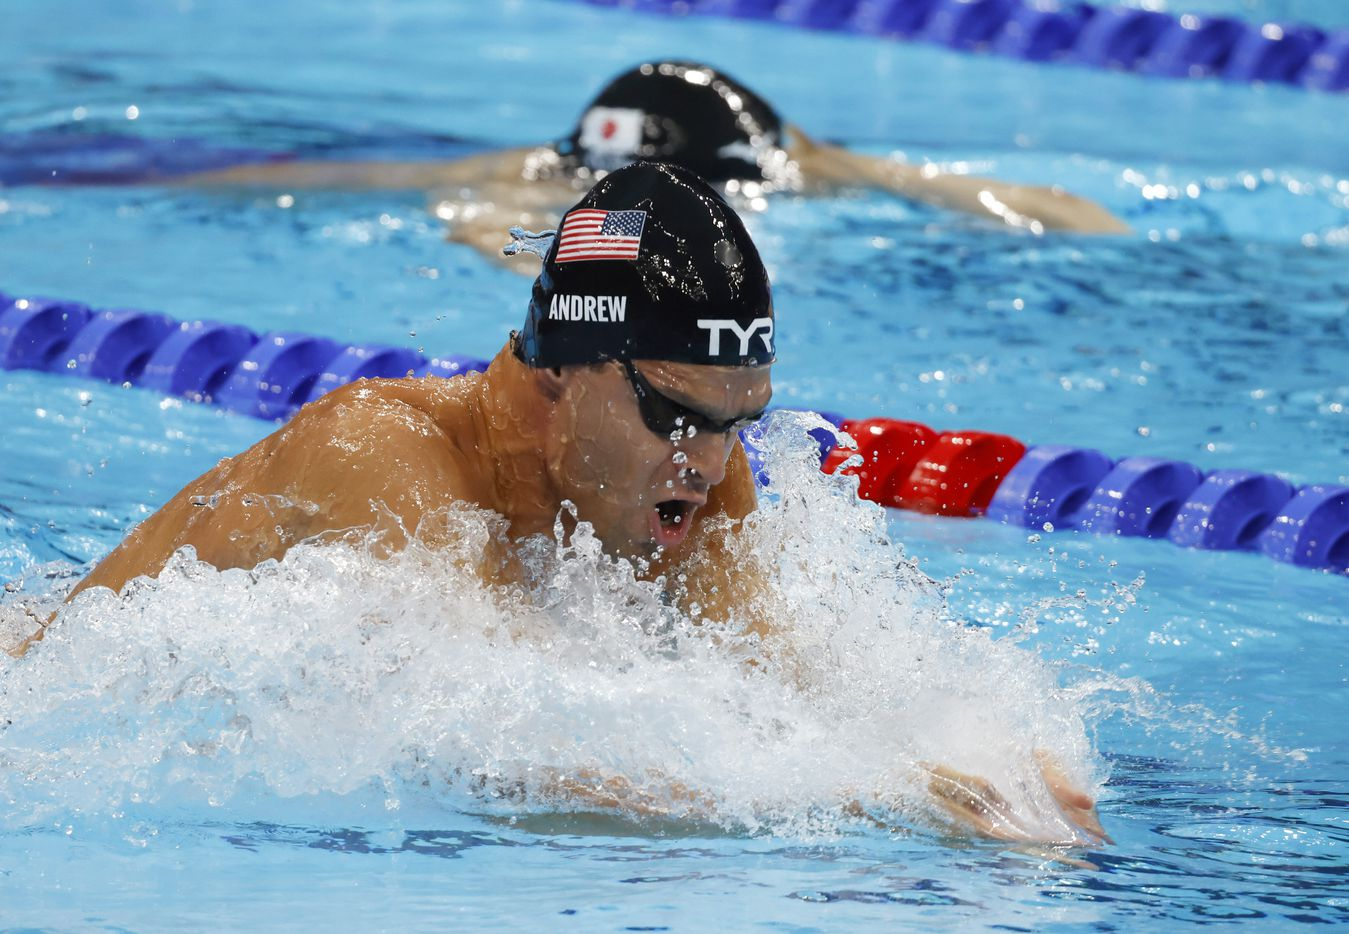 USA's Michael Andrew competes in the men's 4x100 meter medley relay final during the postponed 2020 Tokyo Olympics at Tokyo Aquatics Centre, on Sunday, August 1, 2021, in Tokyo, Japan. USA earned a gold medal, setting a new world record with a time of 3:26.78. (Vernon Bryant/The Dallas Morning News)